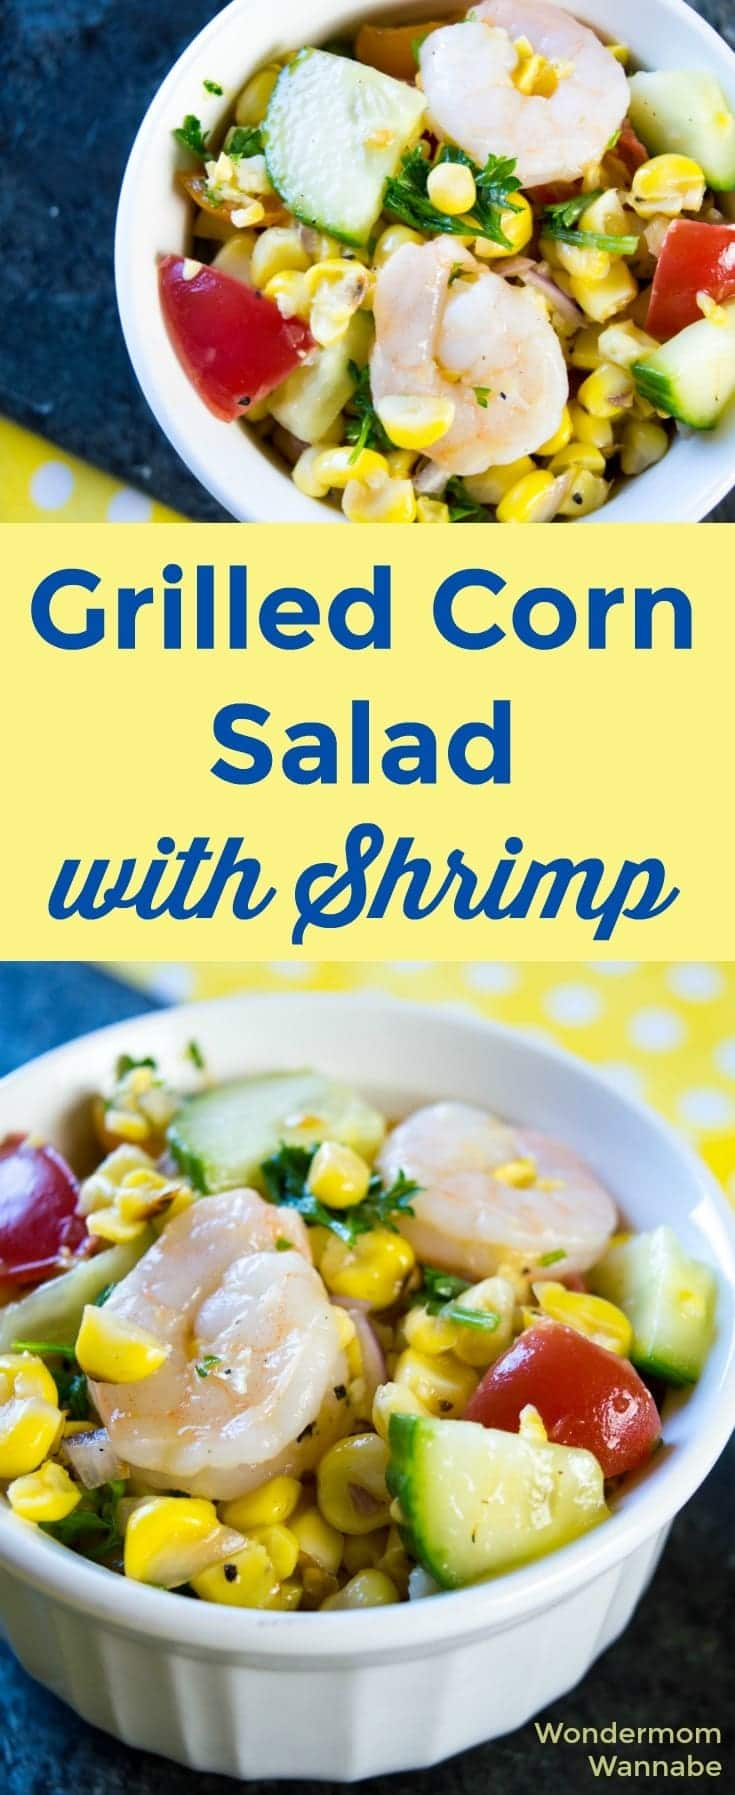 This grilled corn salad is always a hit since it's so full of color, texture, and delicious flavor. I love how easy it is to make!